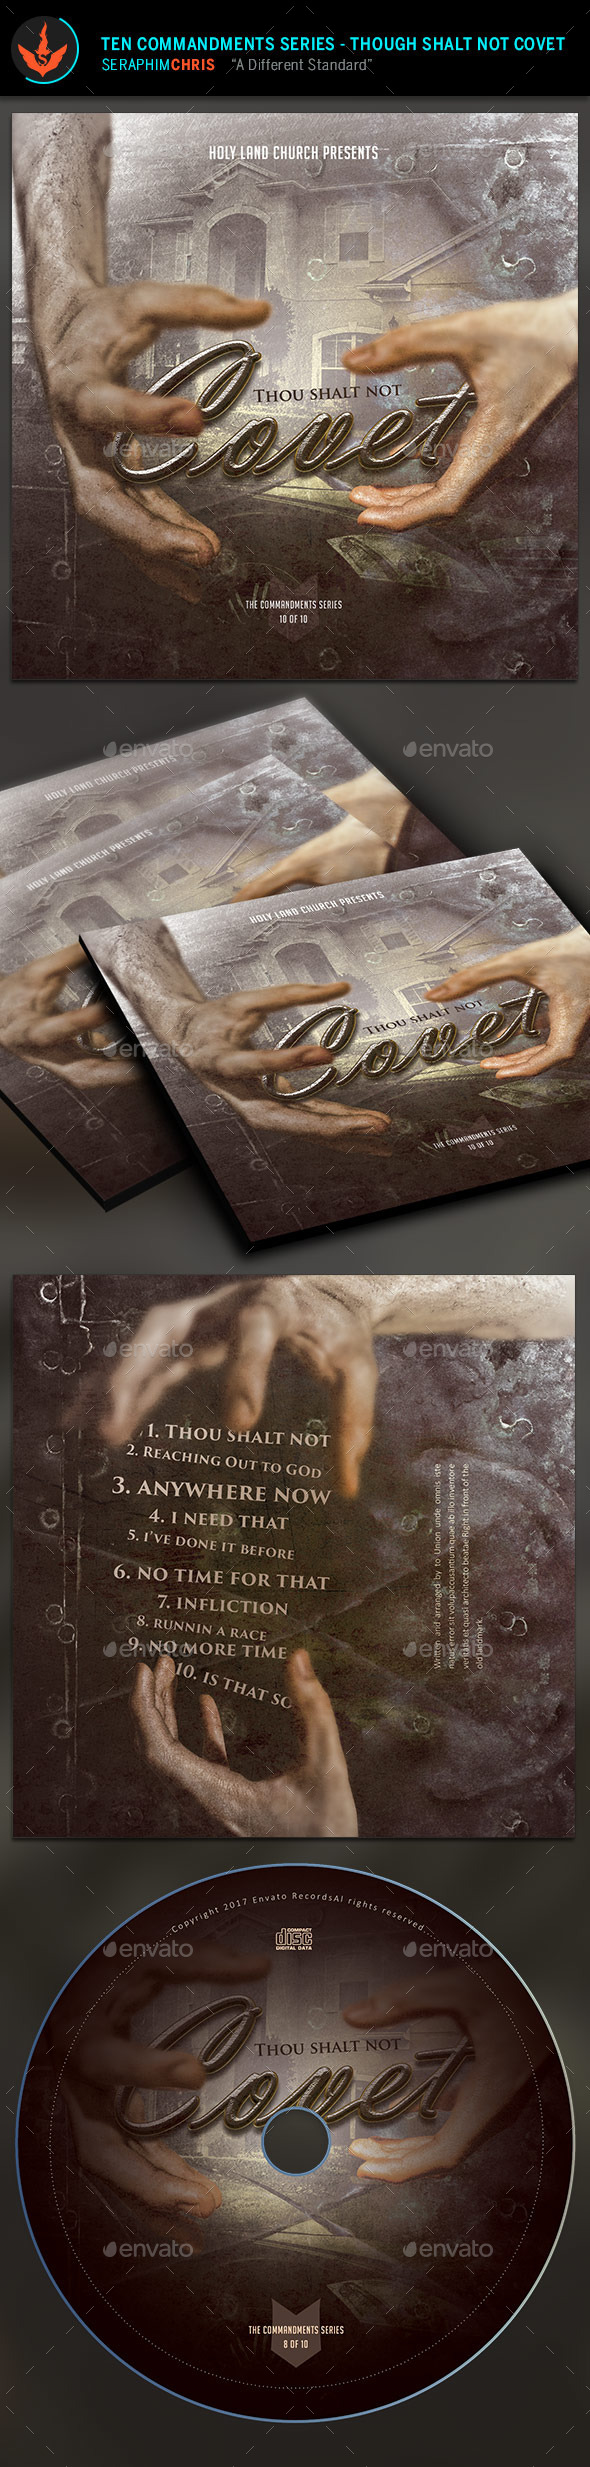 GraphicRiver Don't Covet CD Artwork Template 9723467